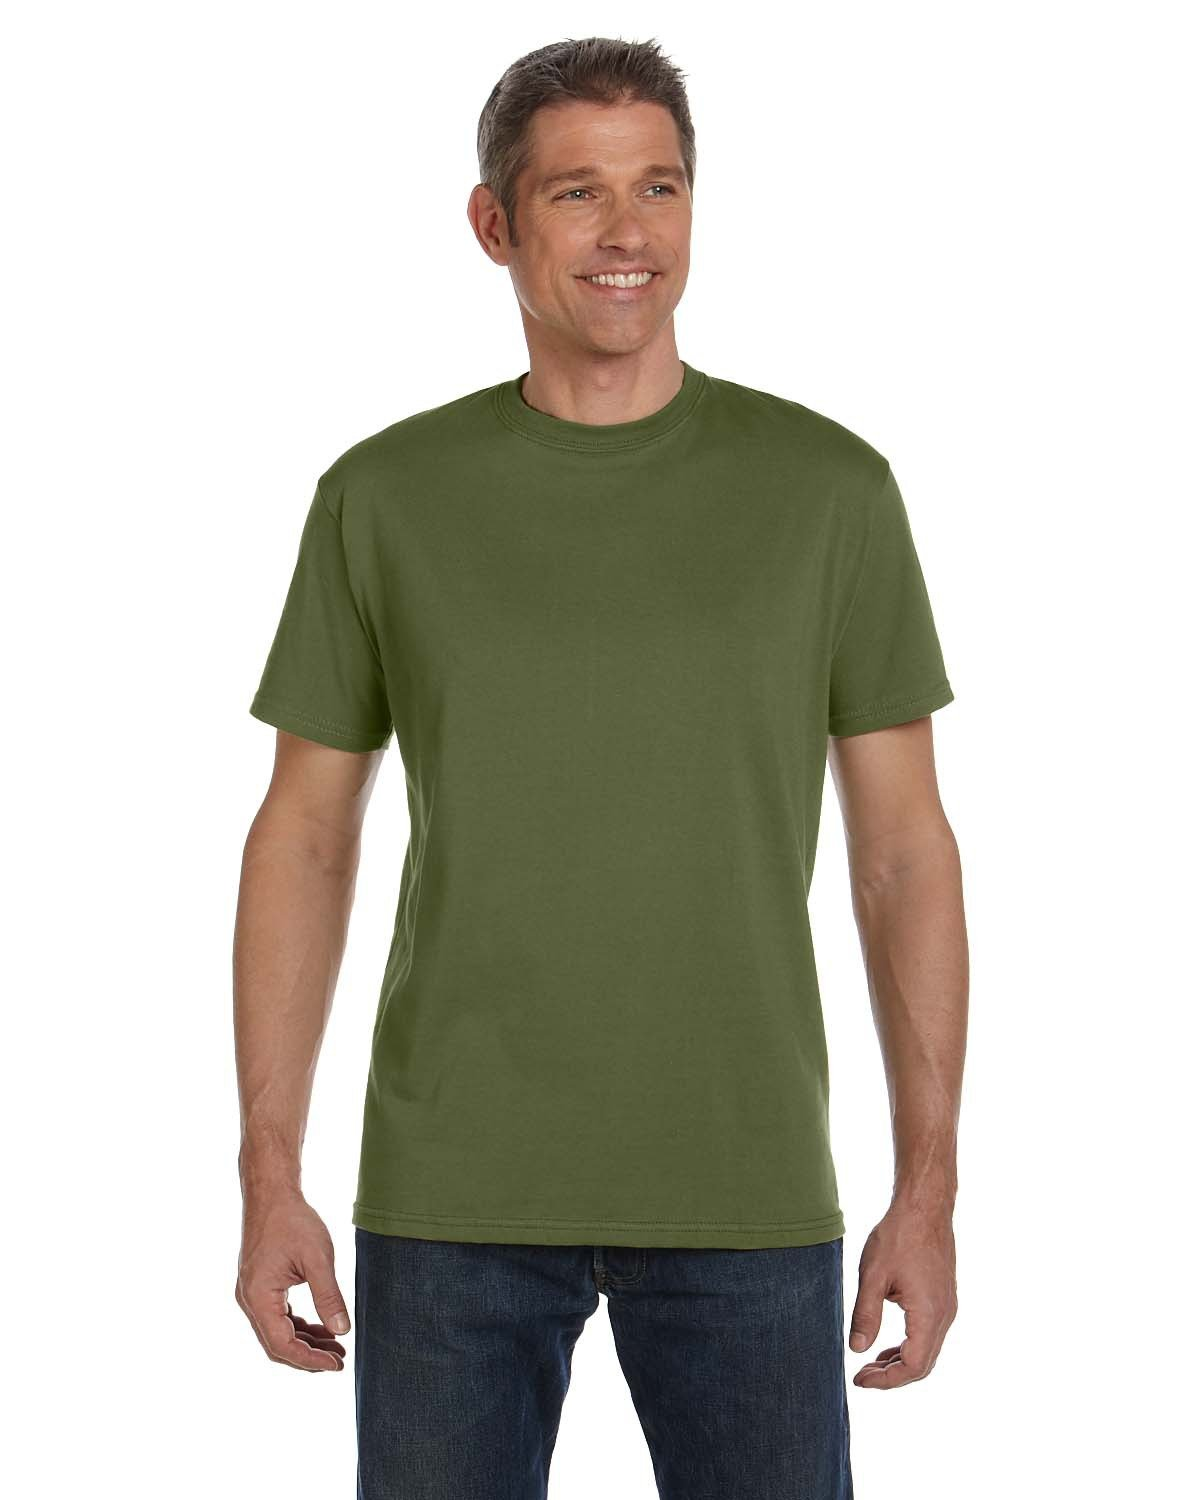 econscious Men's 100% Organic Cotton Classic Short-Sleeve T-Shirt OLIVE